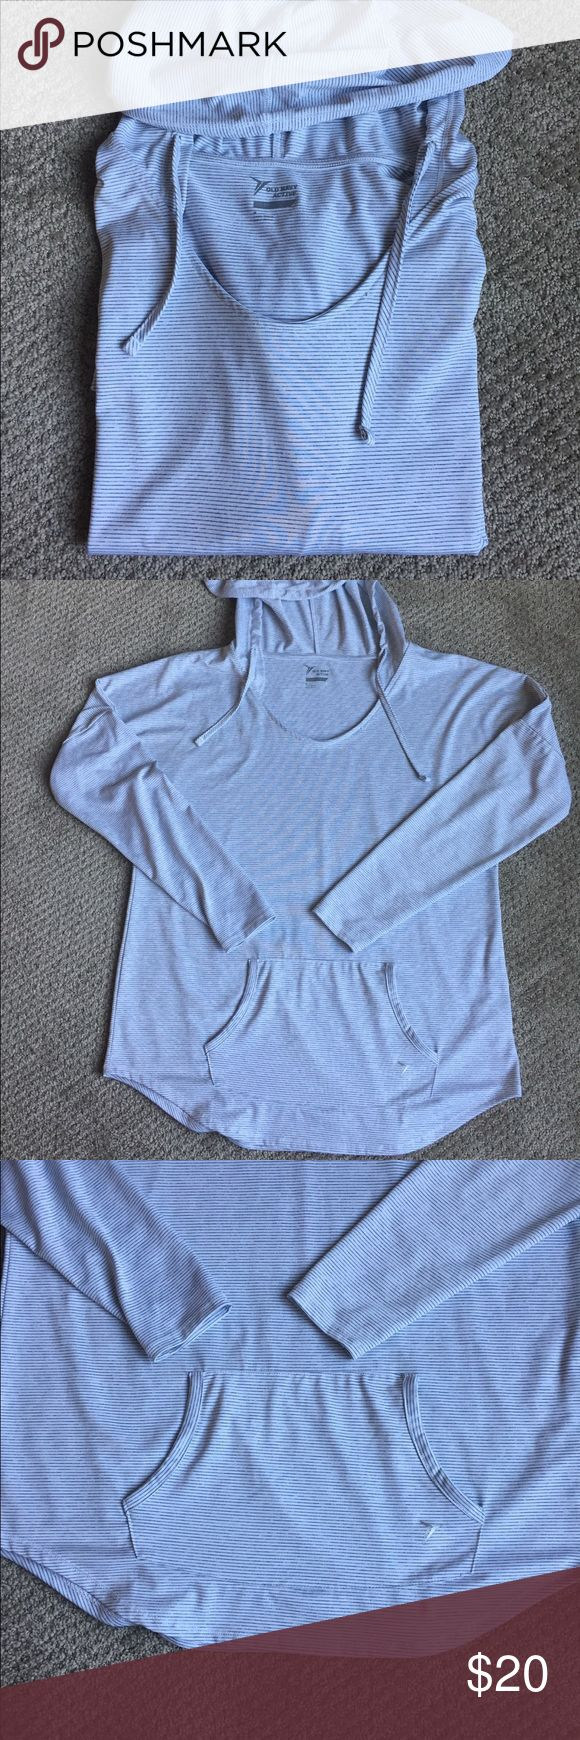 Old Navy Active Pullover EUC lightweight old Navy Active Pullover with hood. Features a lightweight comfortable and breathable white and gray striped fabric. One minor flaw as pictured. Old Navy Tops Sweatshirts & Hoodies